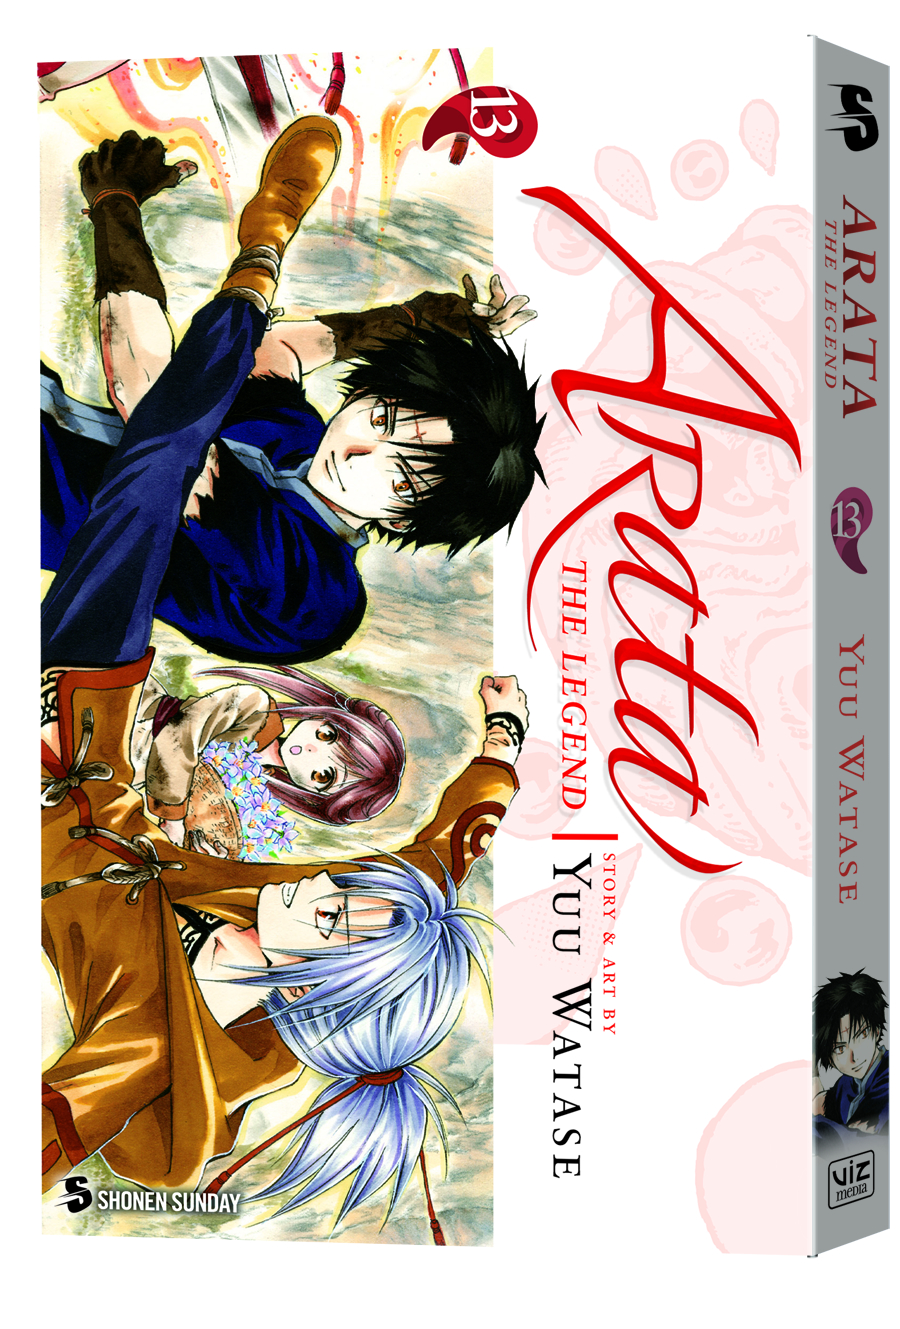 ARATA THE LEGEND GN VOL 13